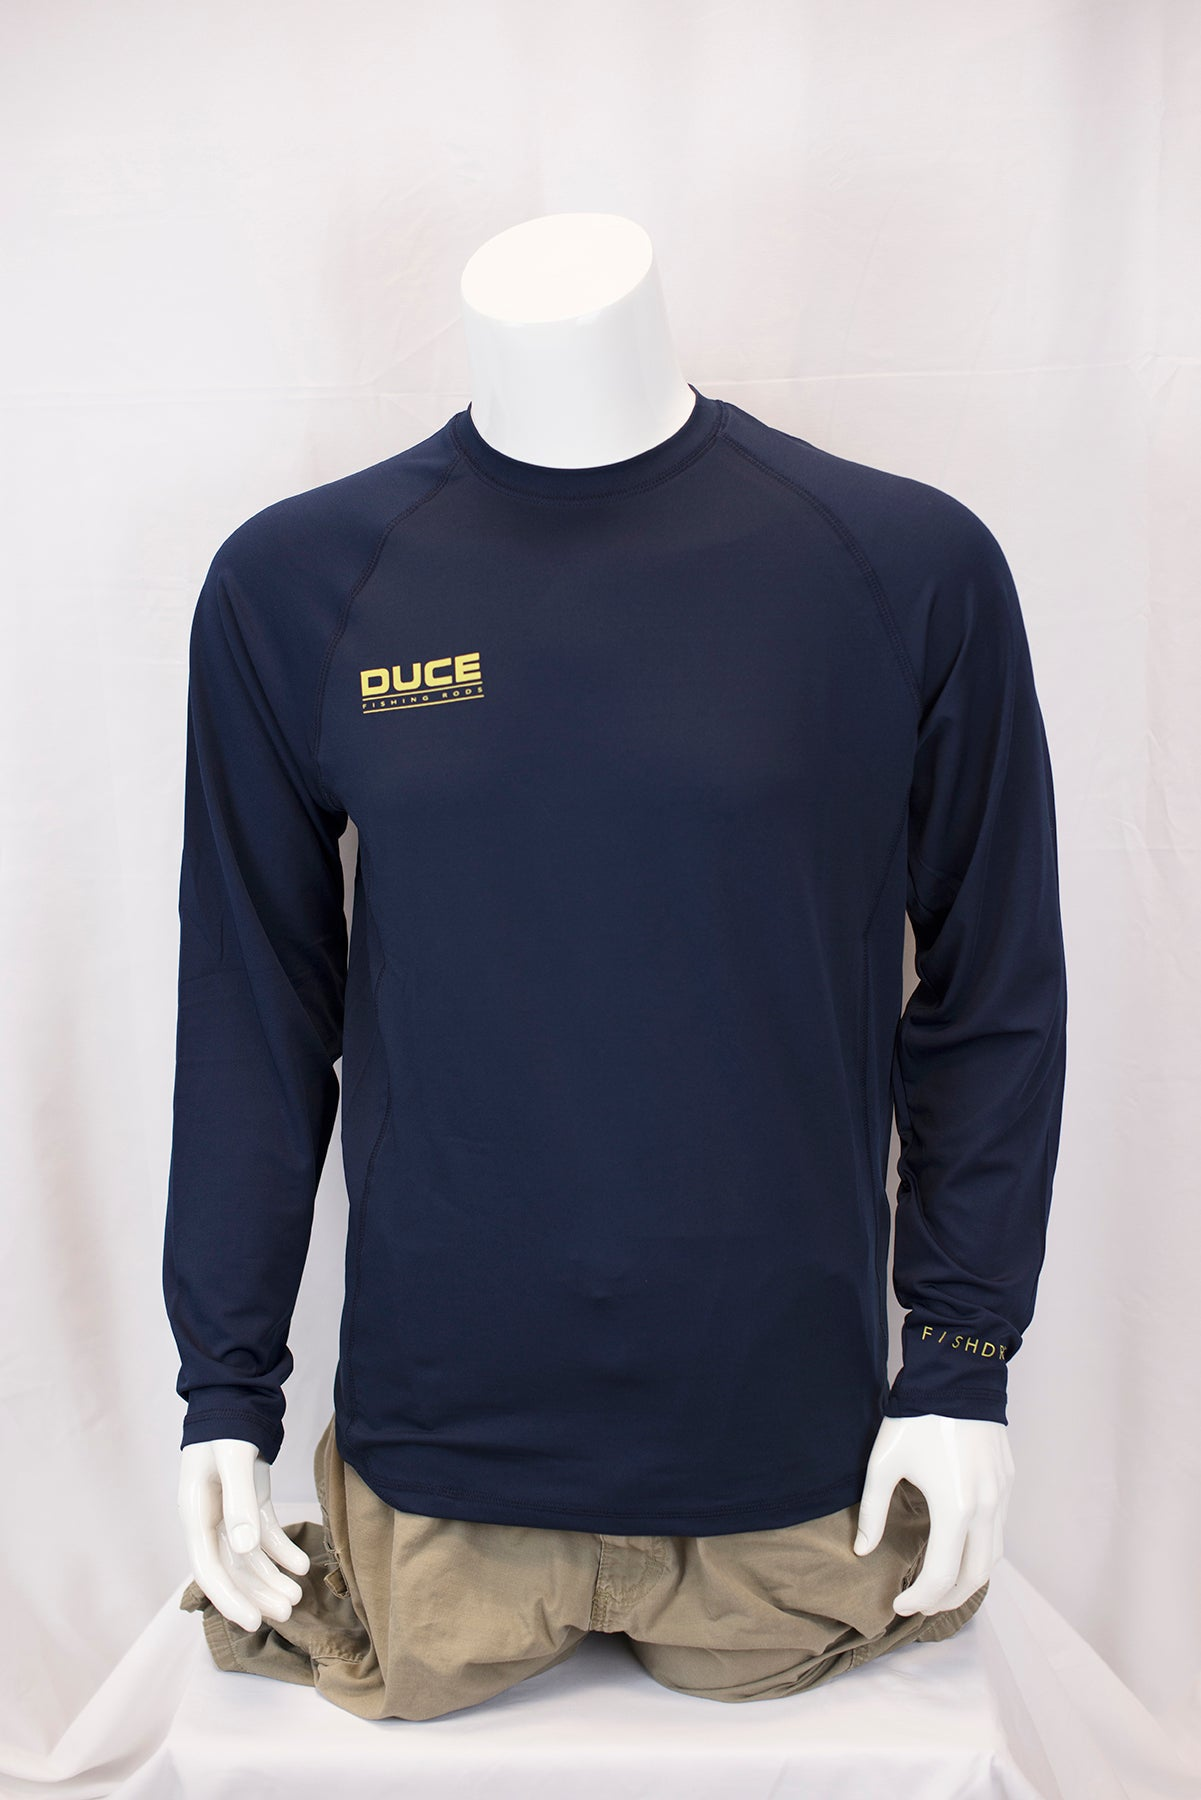 Team DUCE Navy Long Sleeve Cool and Dry Performance Shirt